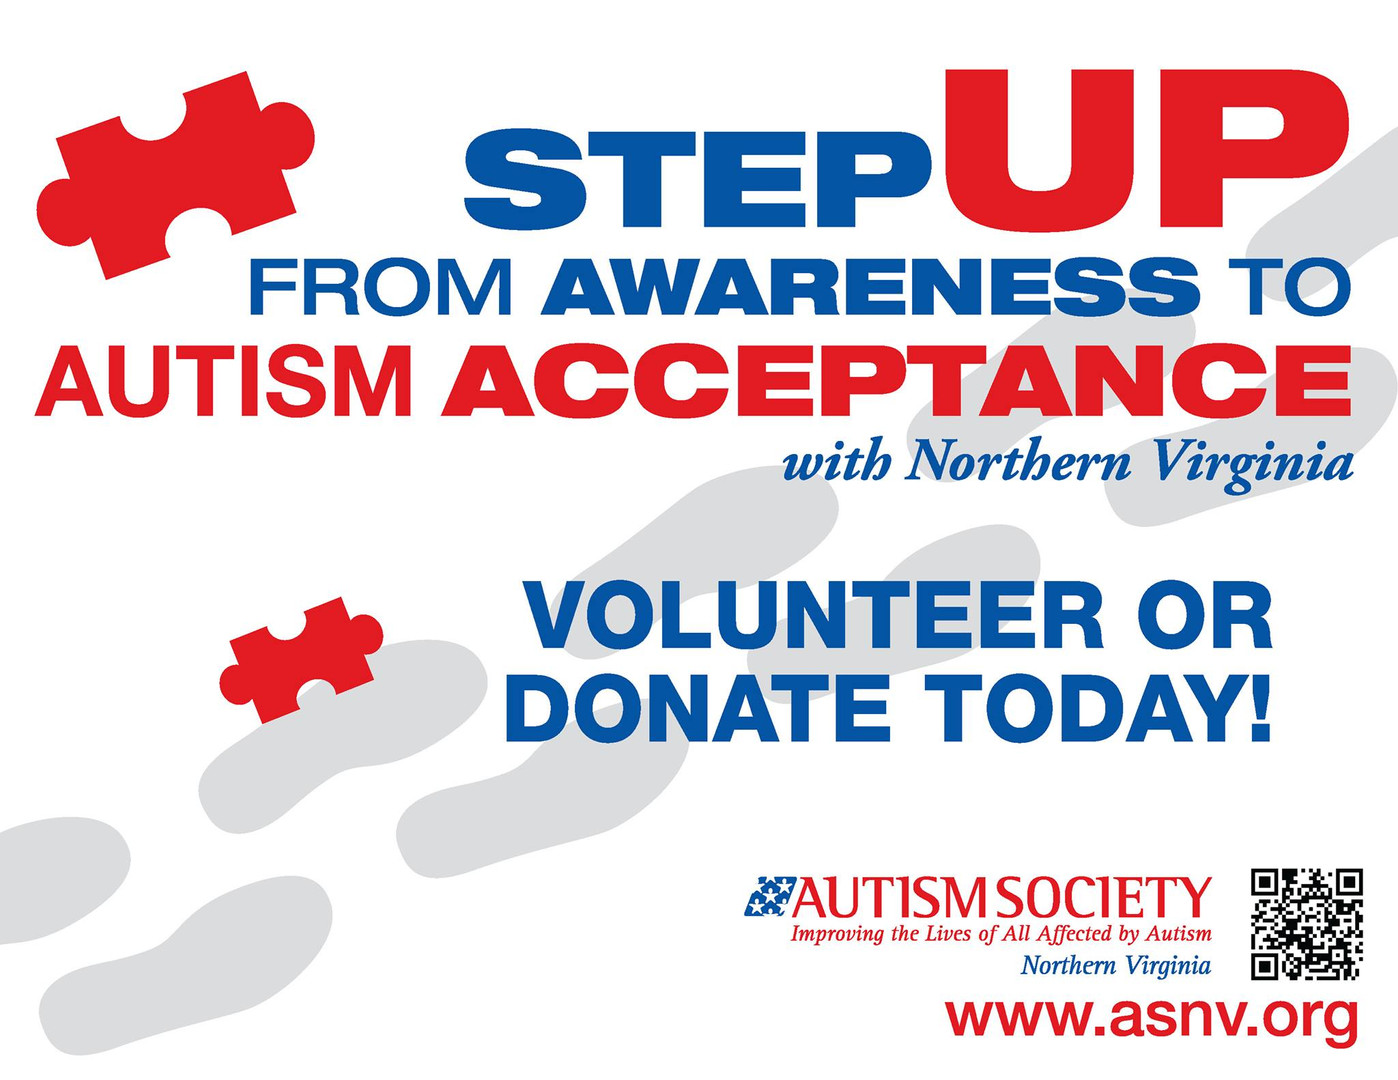 ASD volunteer or donate.jpg